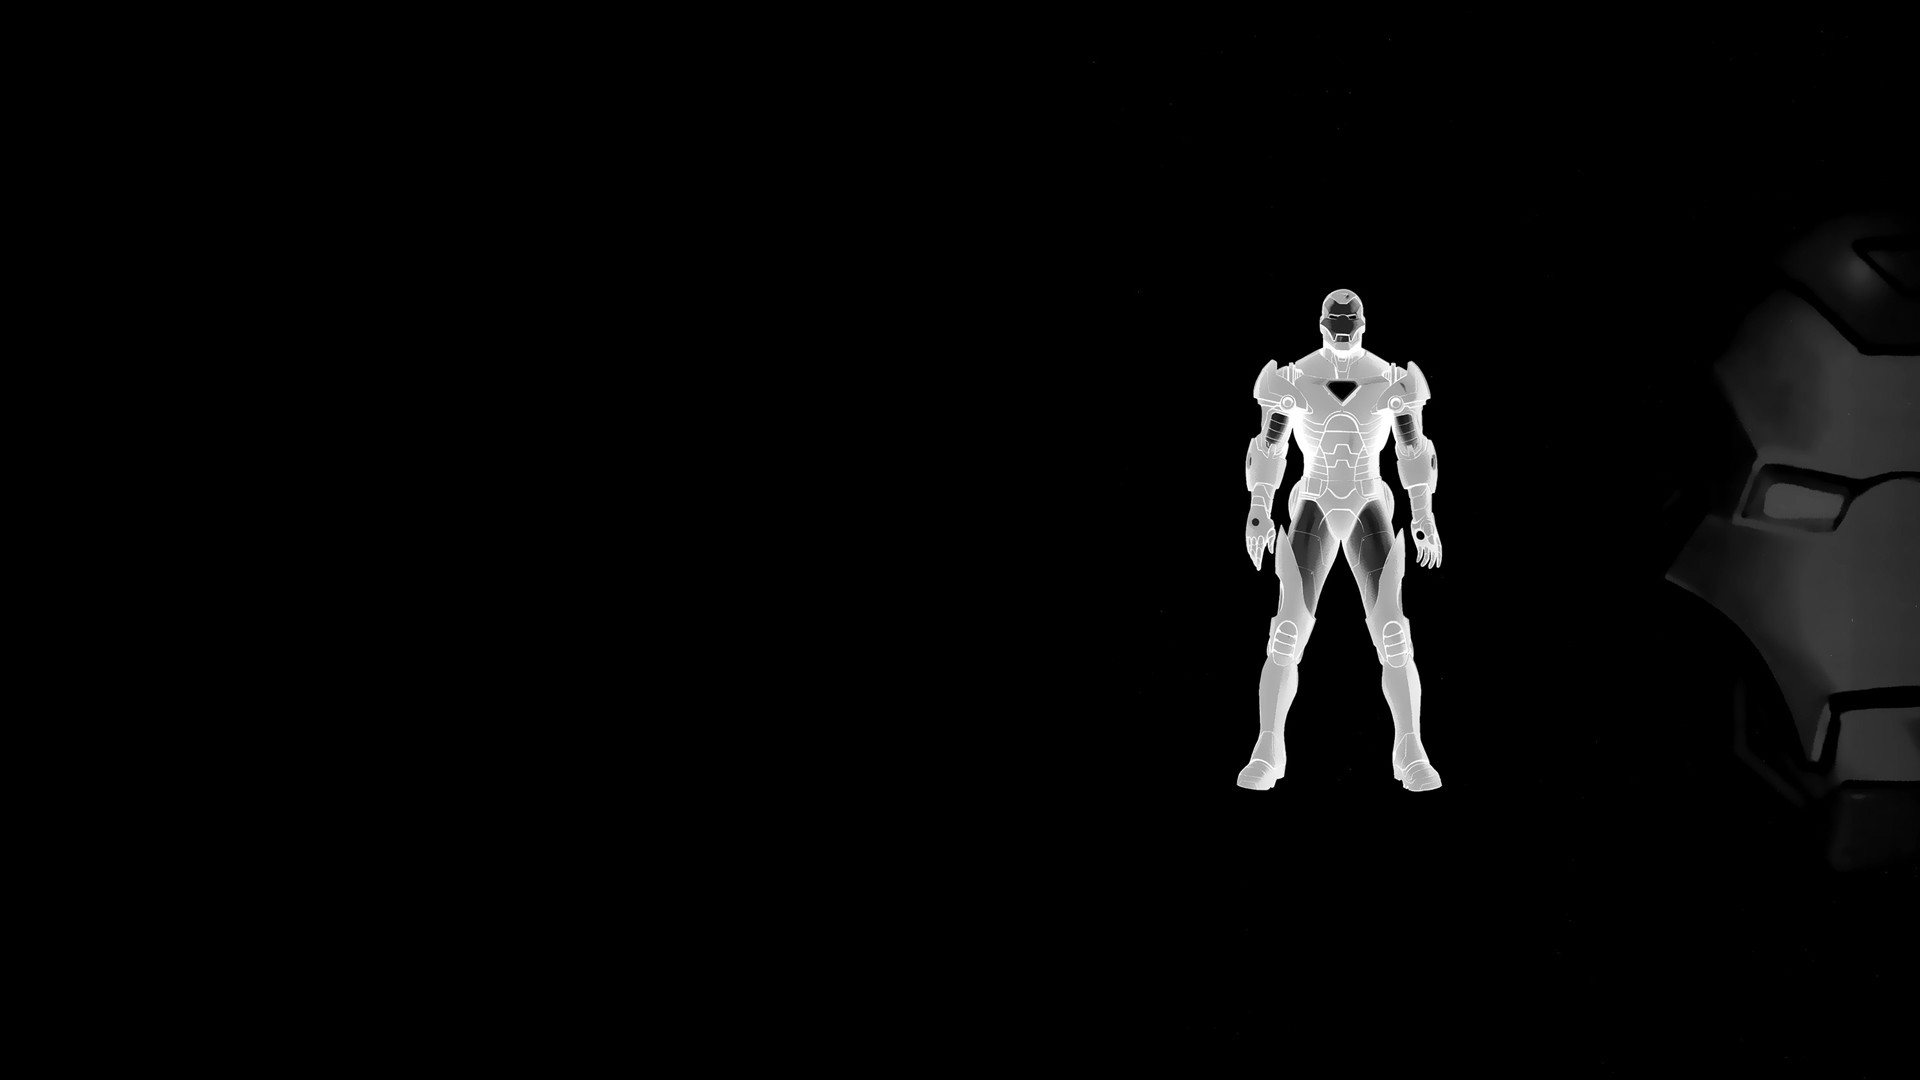 Jarvis Iron Man Wallpaper Hd 74 Images: Iron Man Jarvis Animated Wallpaper (79+ Images